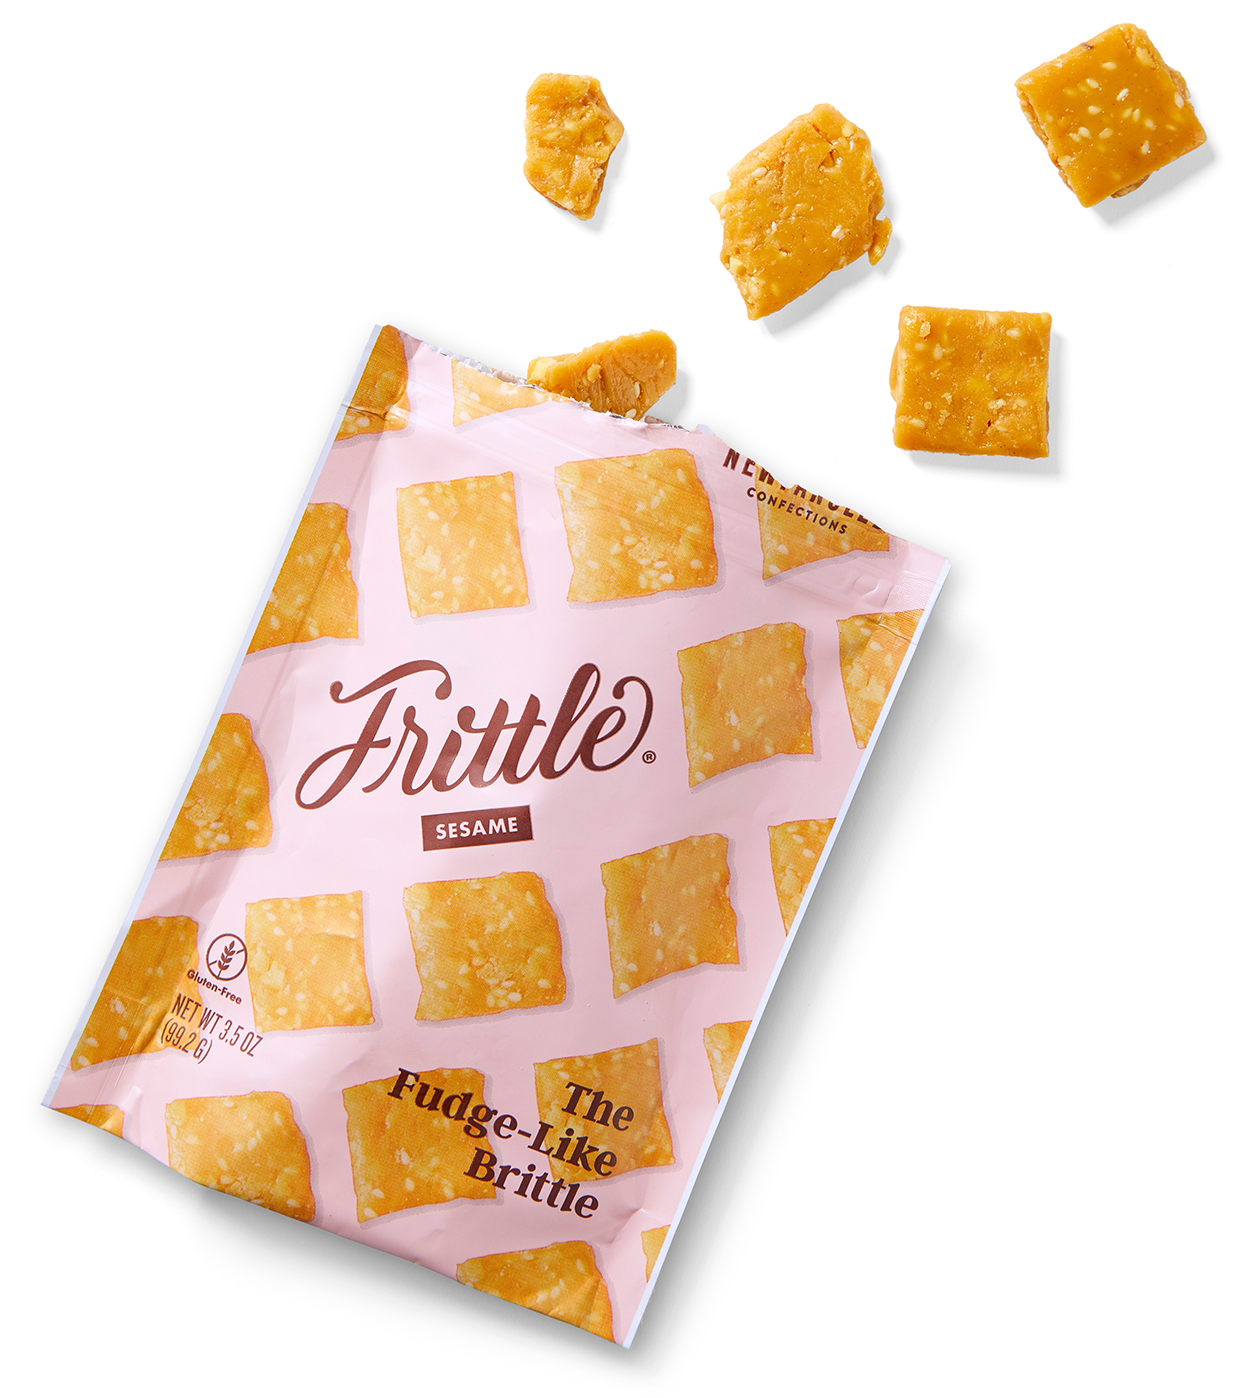 frittle brittle snack package bites